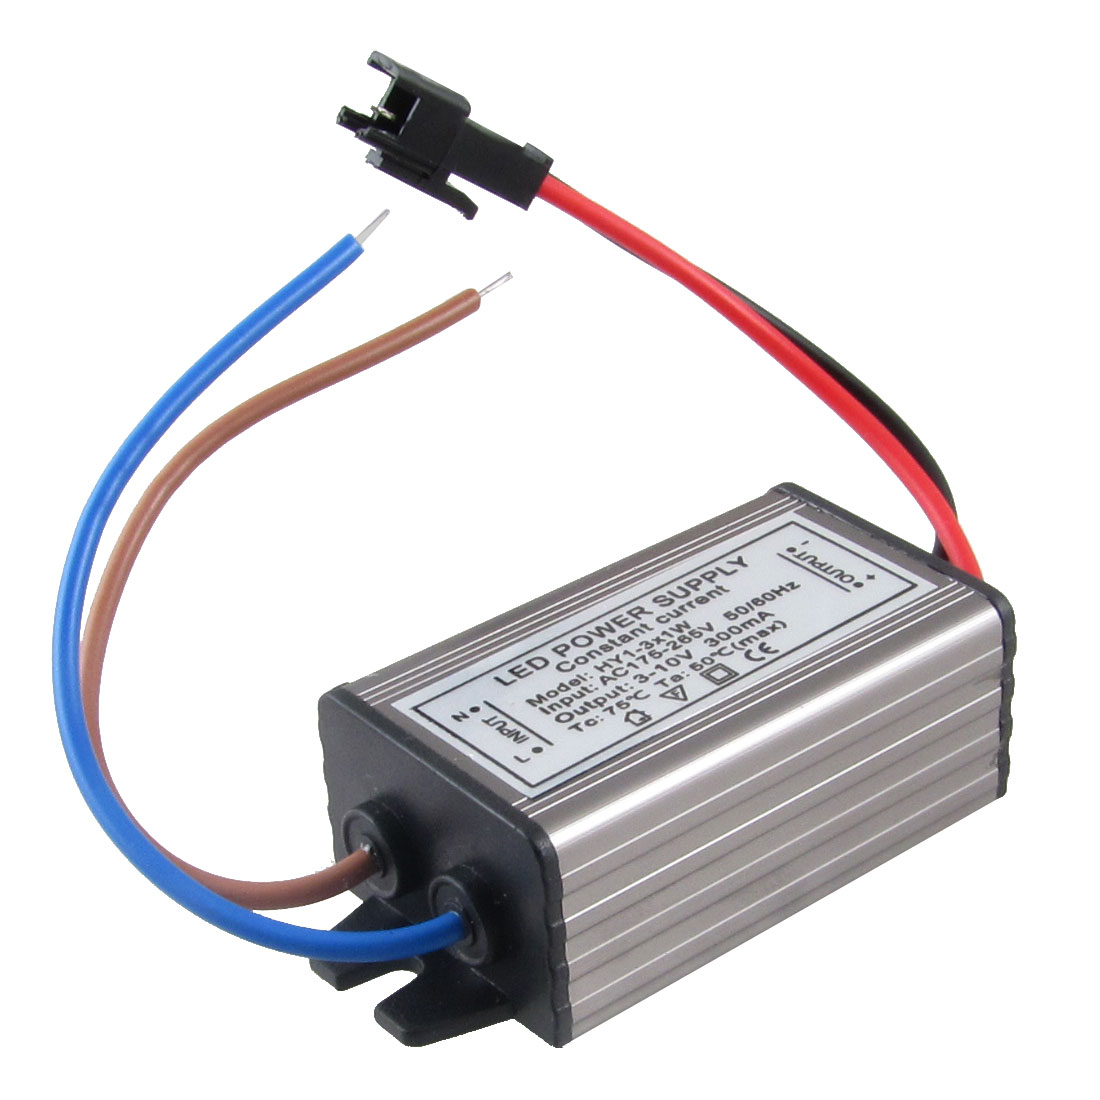 AC 175-265V DC 3-10V 300mA Water Resistant Power Supply for 1W-3W LED Lamp